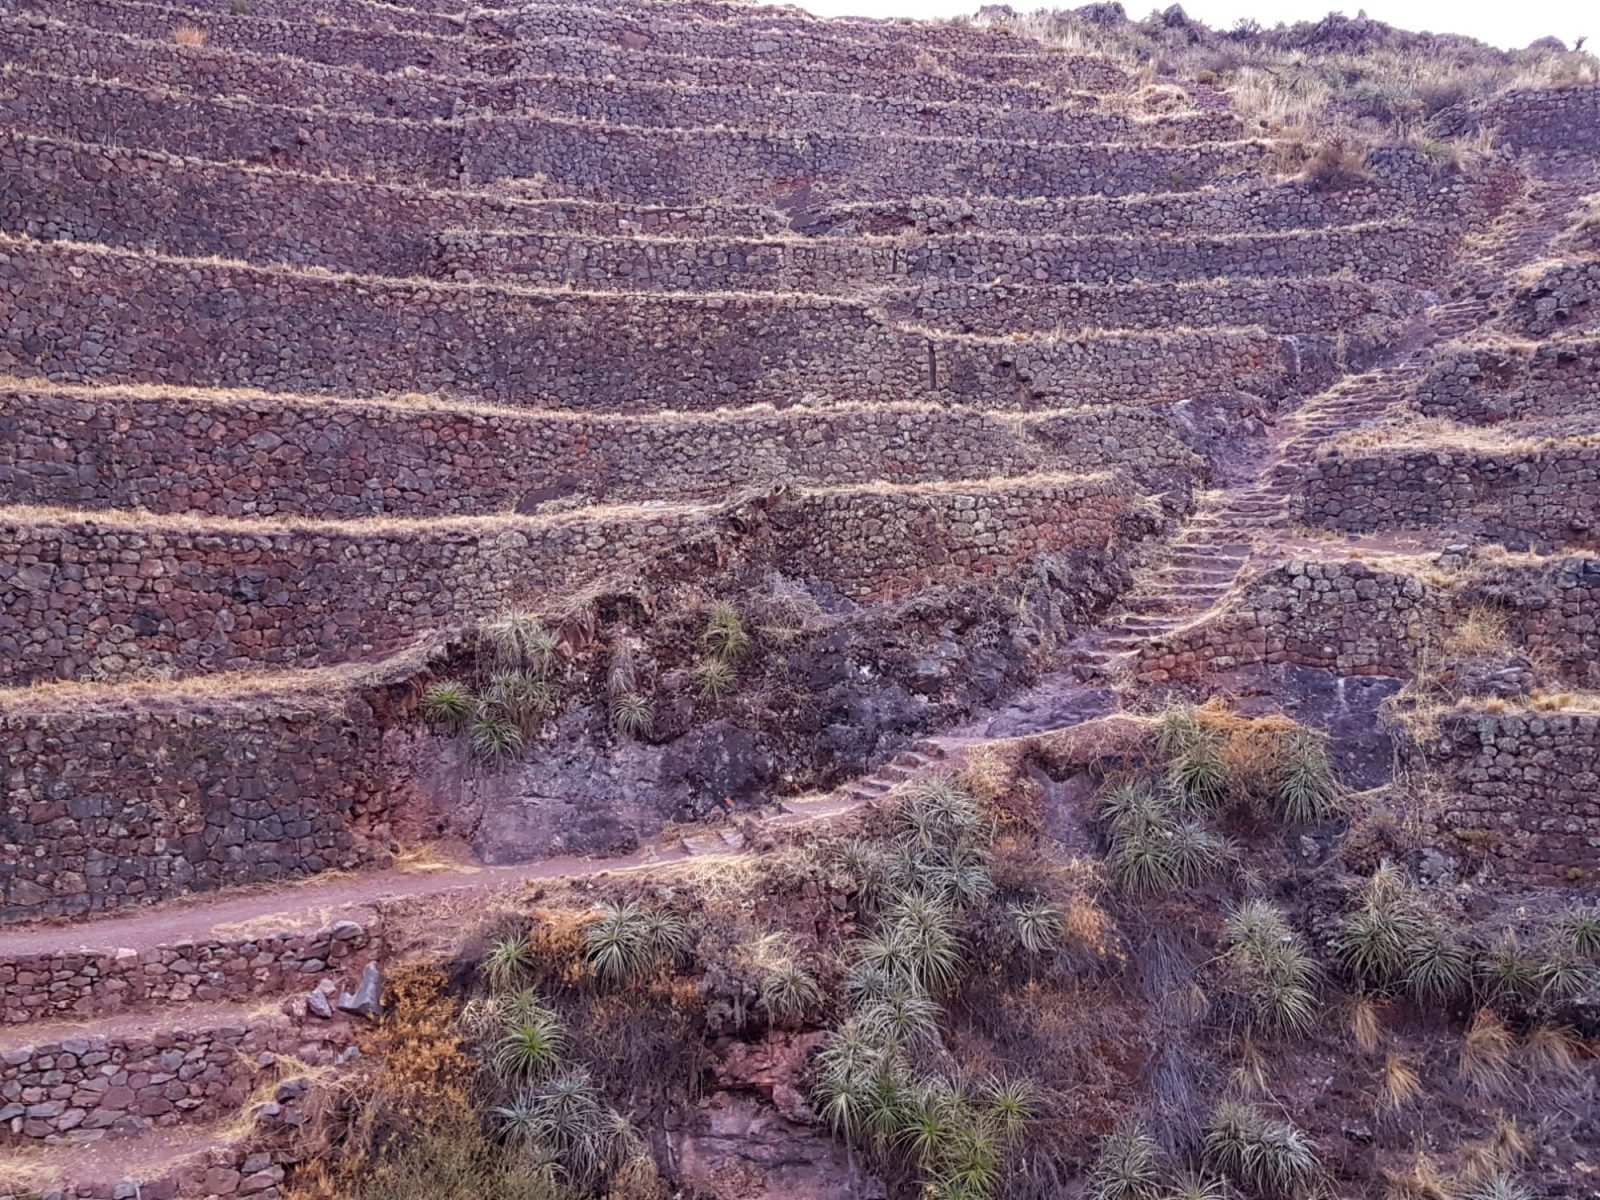 """<img src=""""images/"""" width=""""800"""" height=""""600"""" alt=""""sacred valley - 20171010 172512339962867 - Peru: Town Hopping The Sacred Valley"""">"""